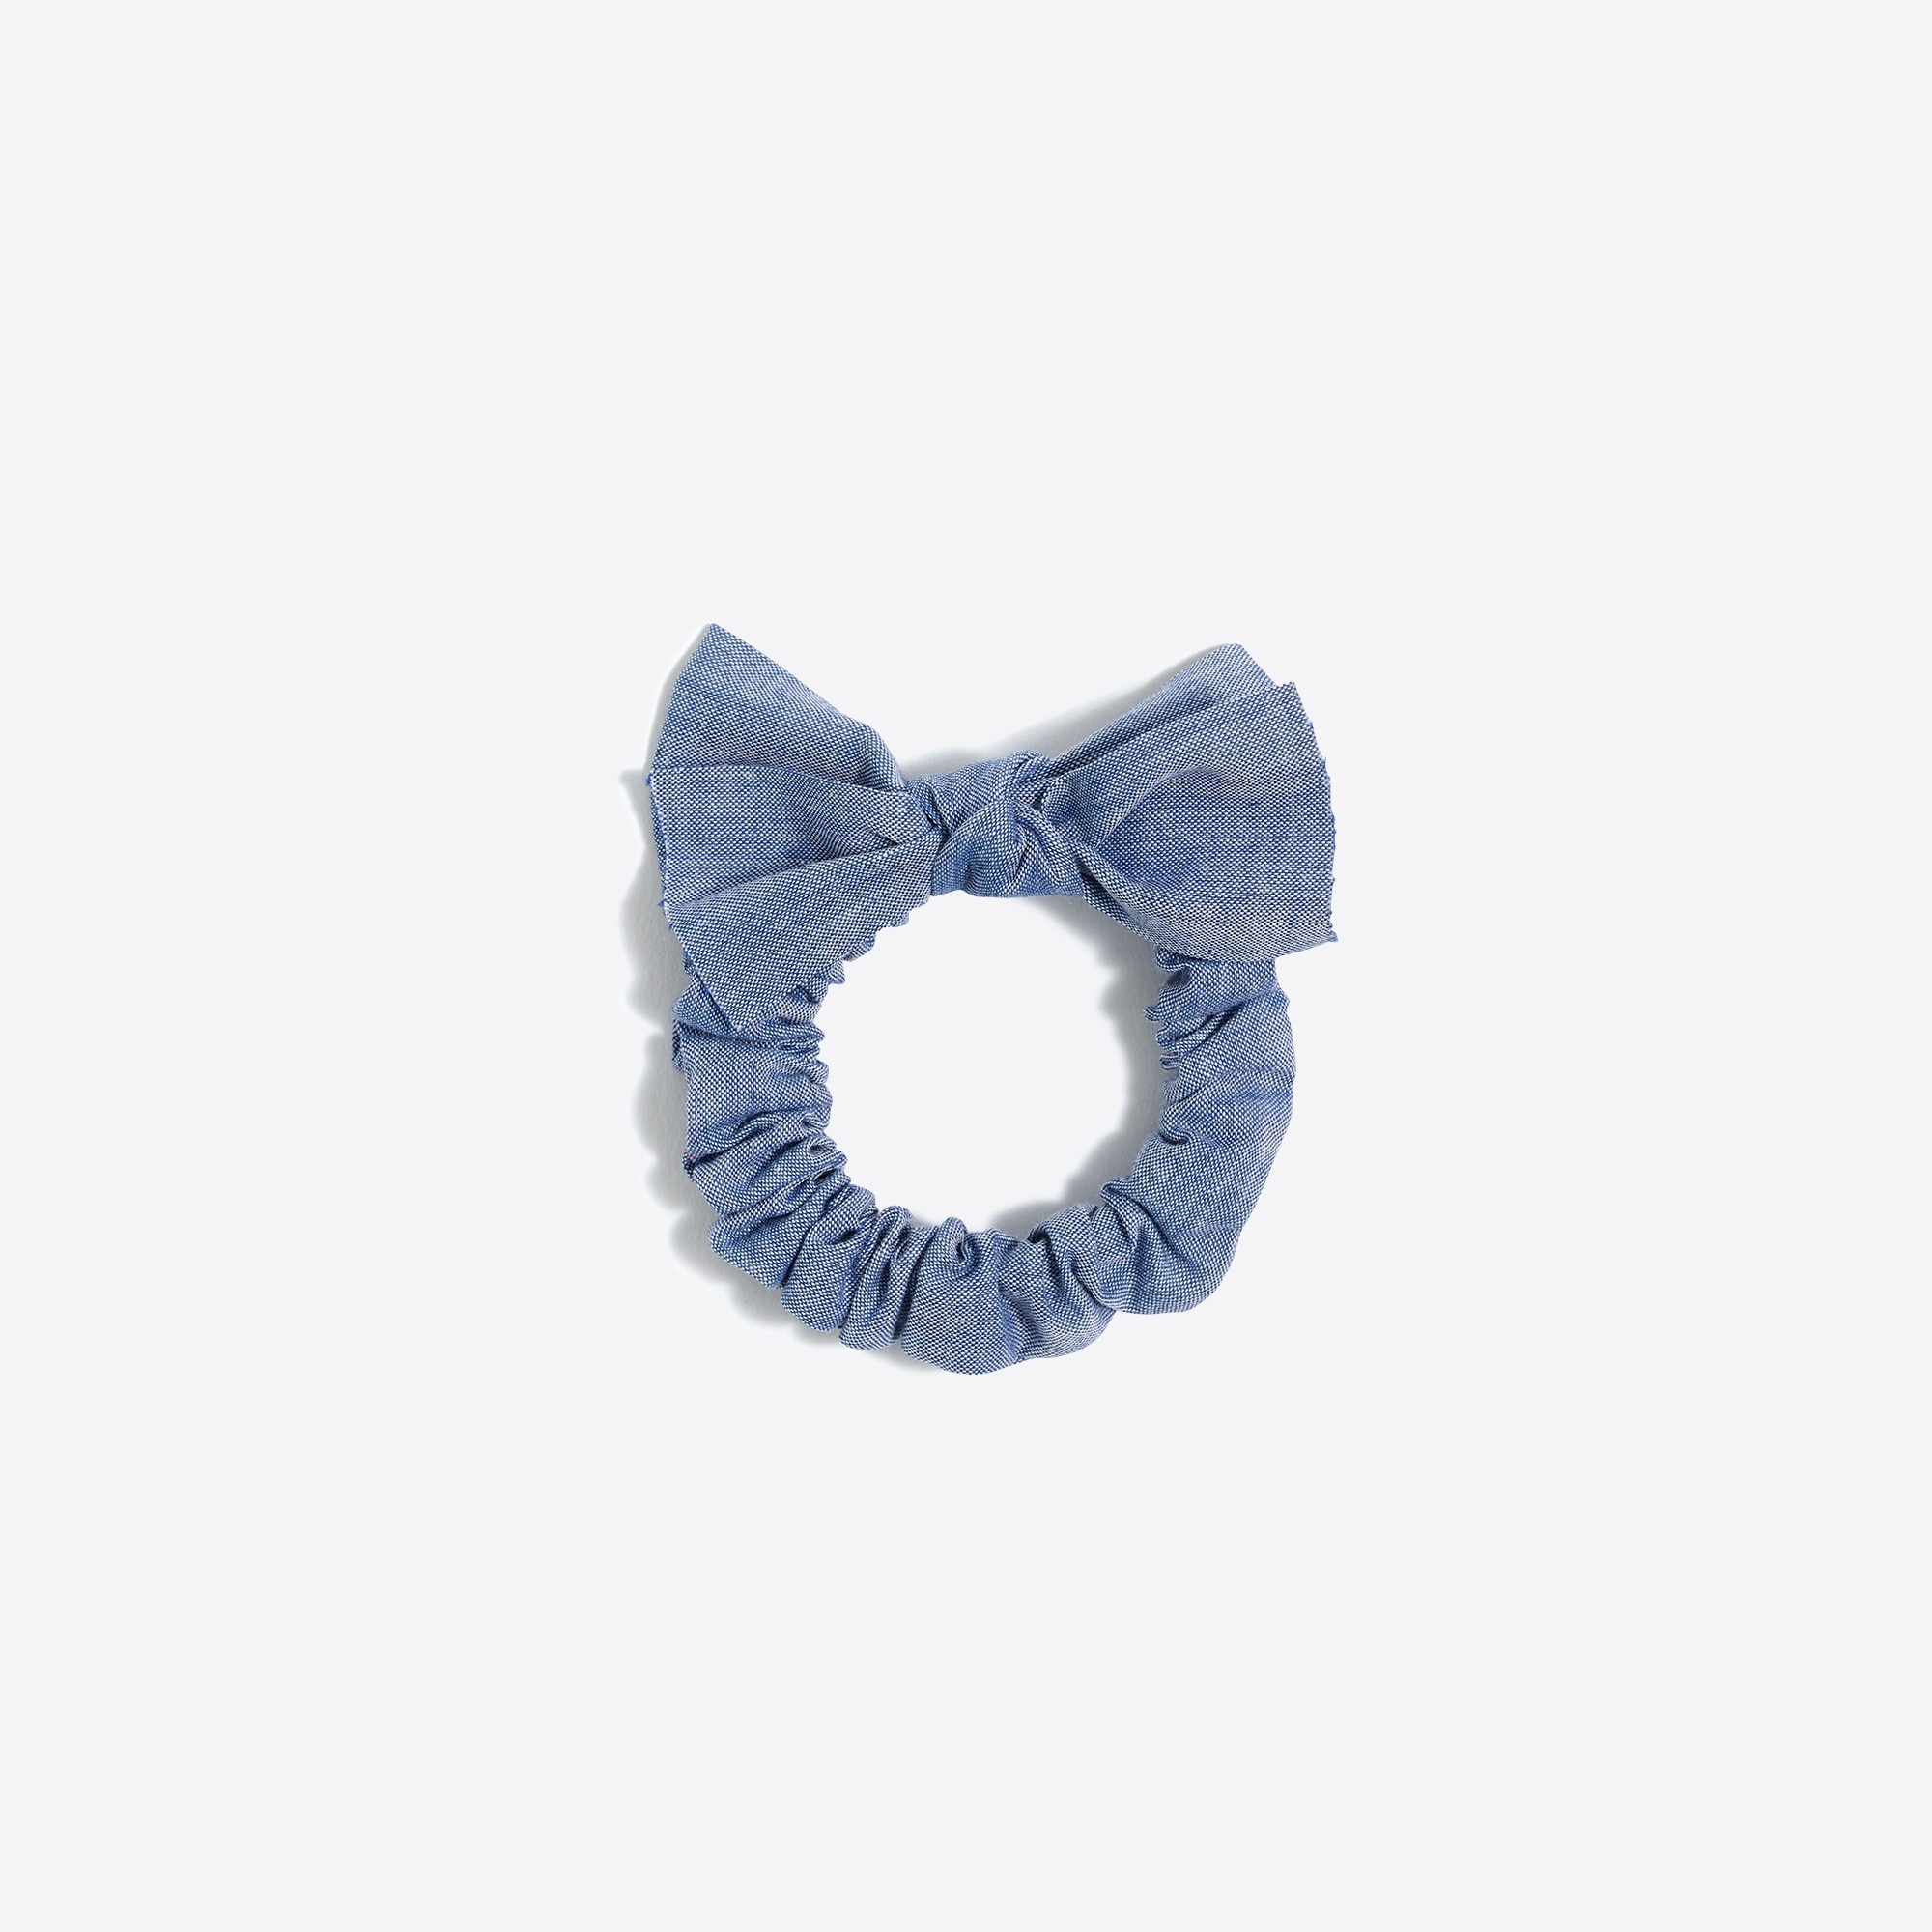 factory girls Bow-top scrunchie